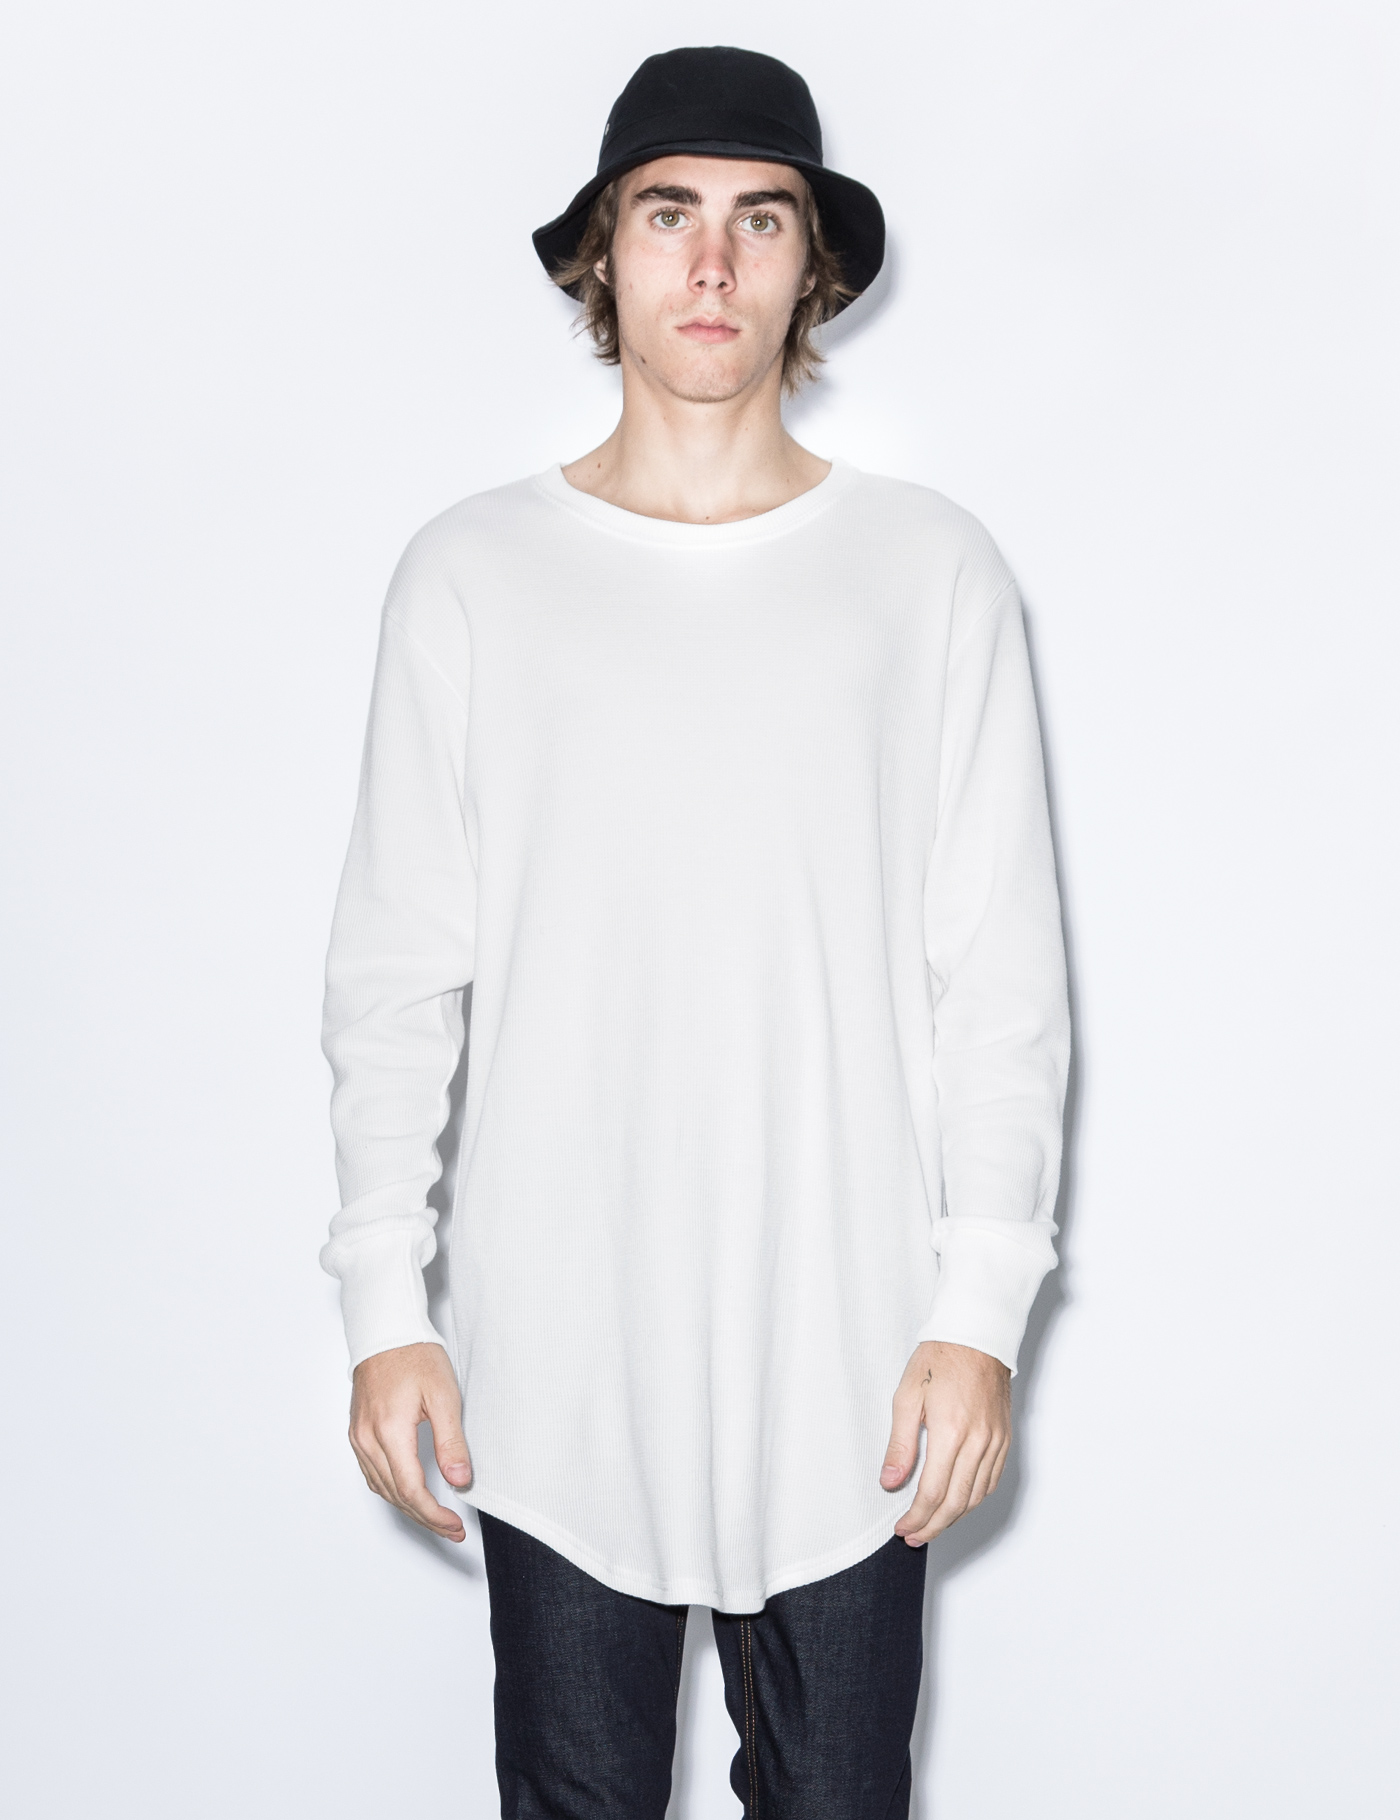 Knyew white thermal e long scoop l s t shirt hbx for White thermal t shirt